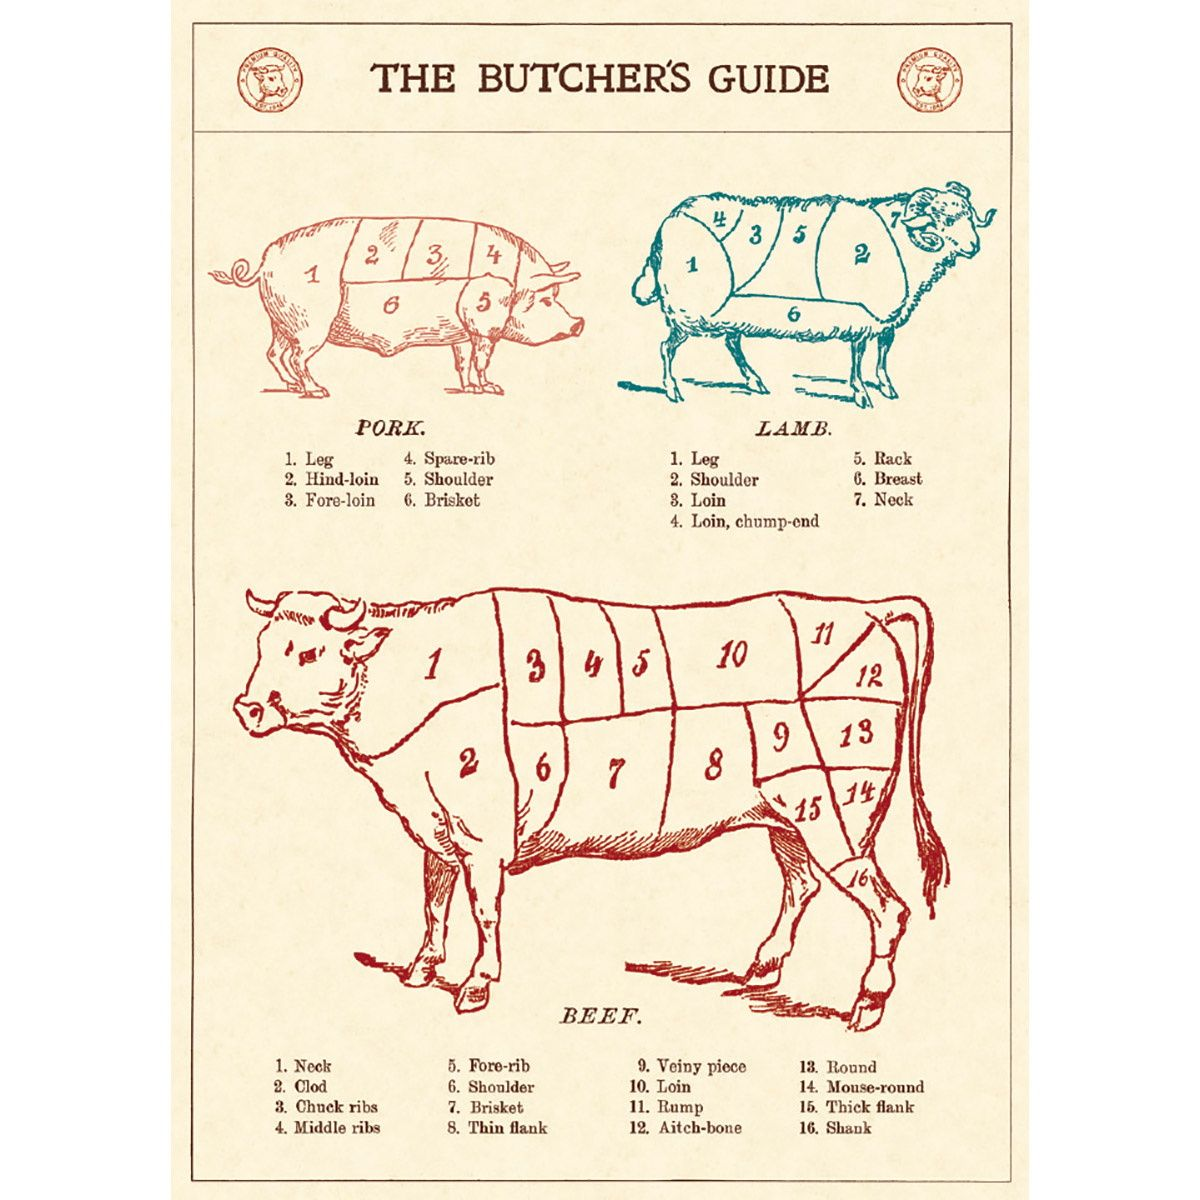 Butchers guide beef cuts vintage style poster decorative paper butchers guide beef cuts vintage style poster pooptronica